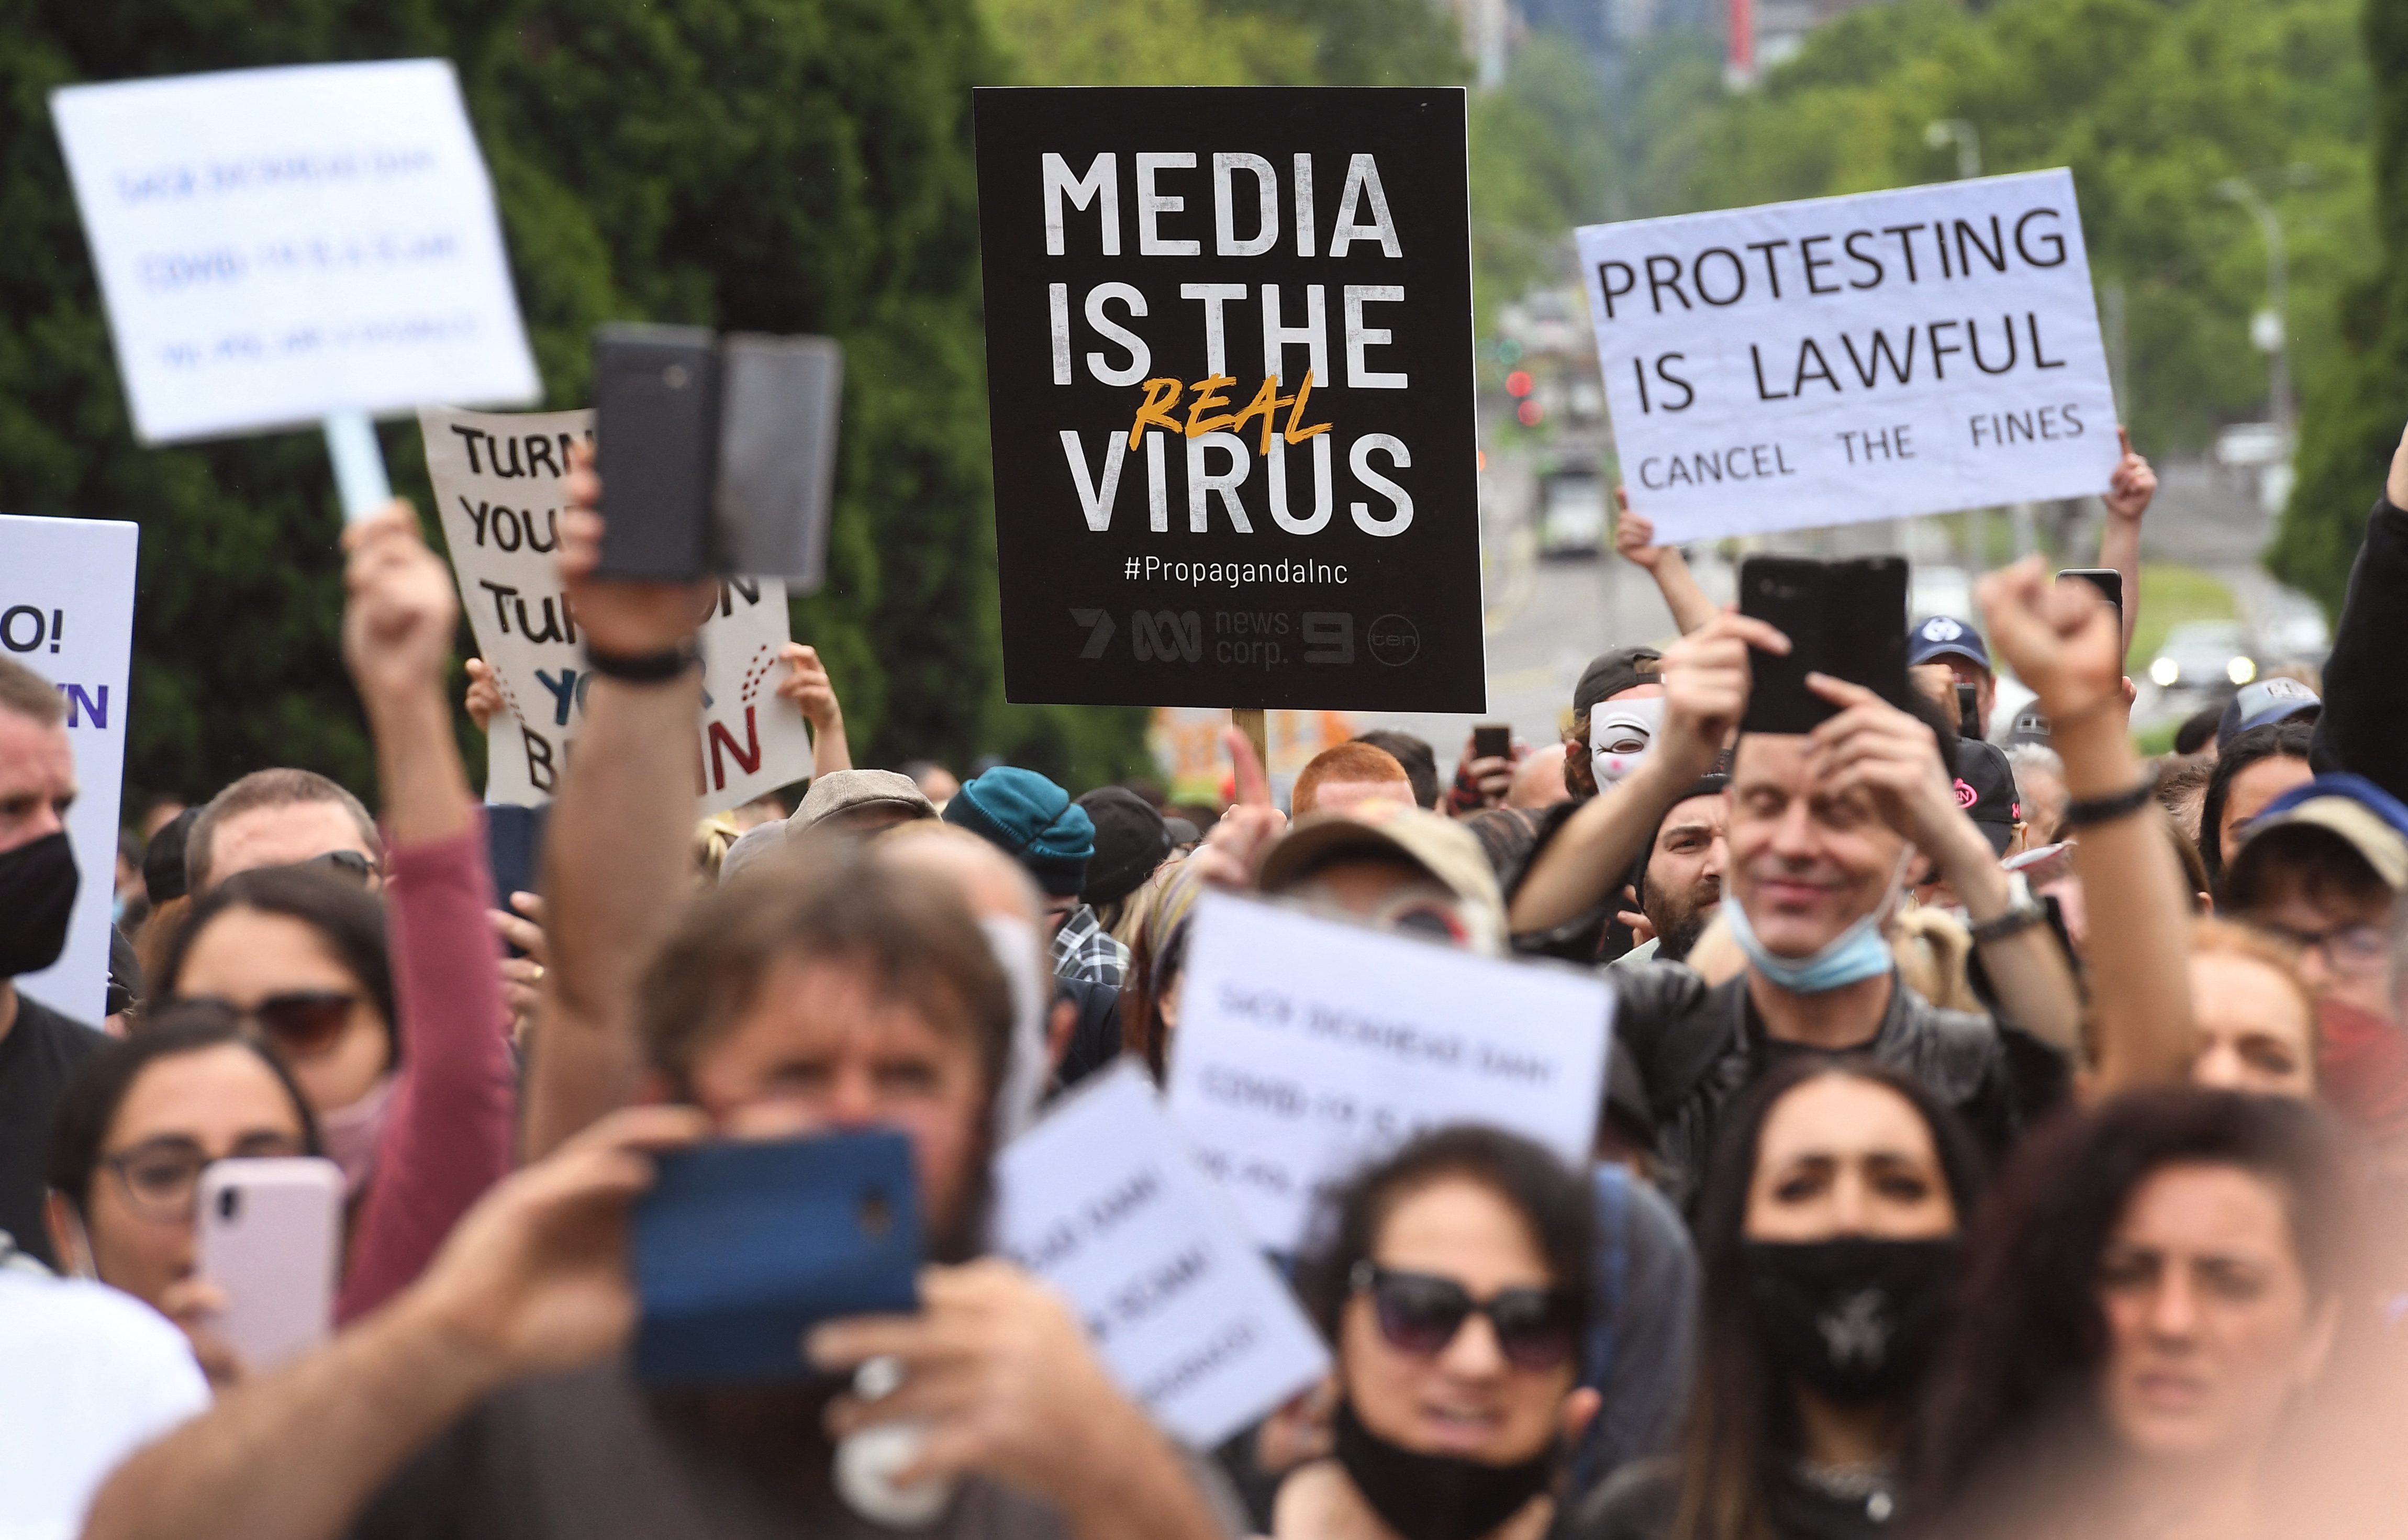 Protesters hold up placards during an anti-lockdown rally in Melbourne on October 23, 2020, amid the COVID-19 coronavirus pandemic [William West/AFP]